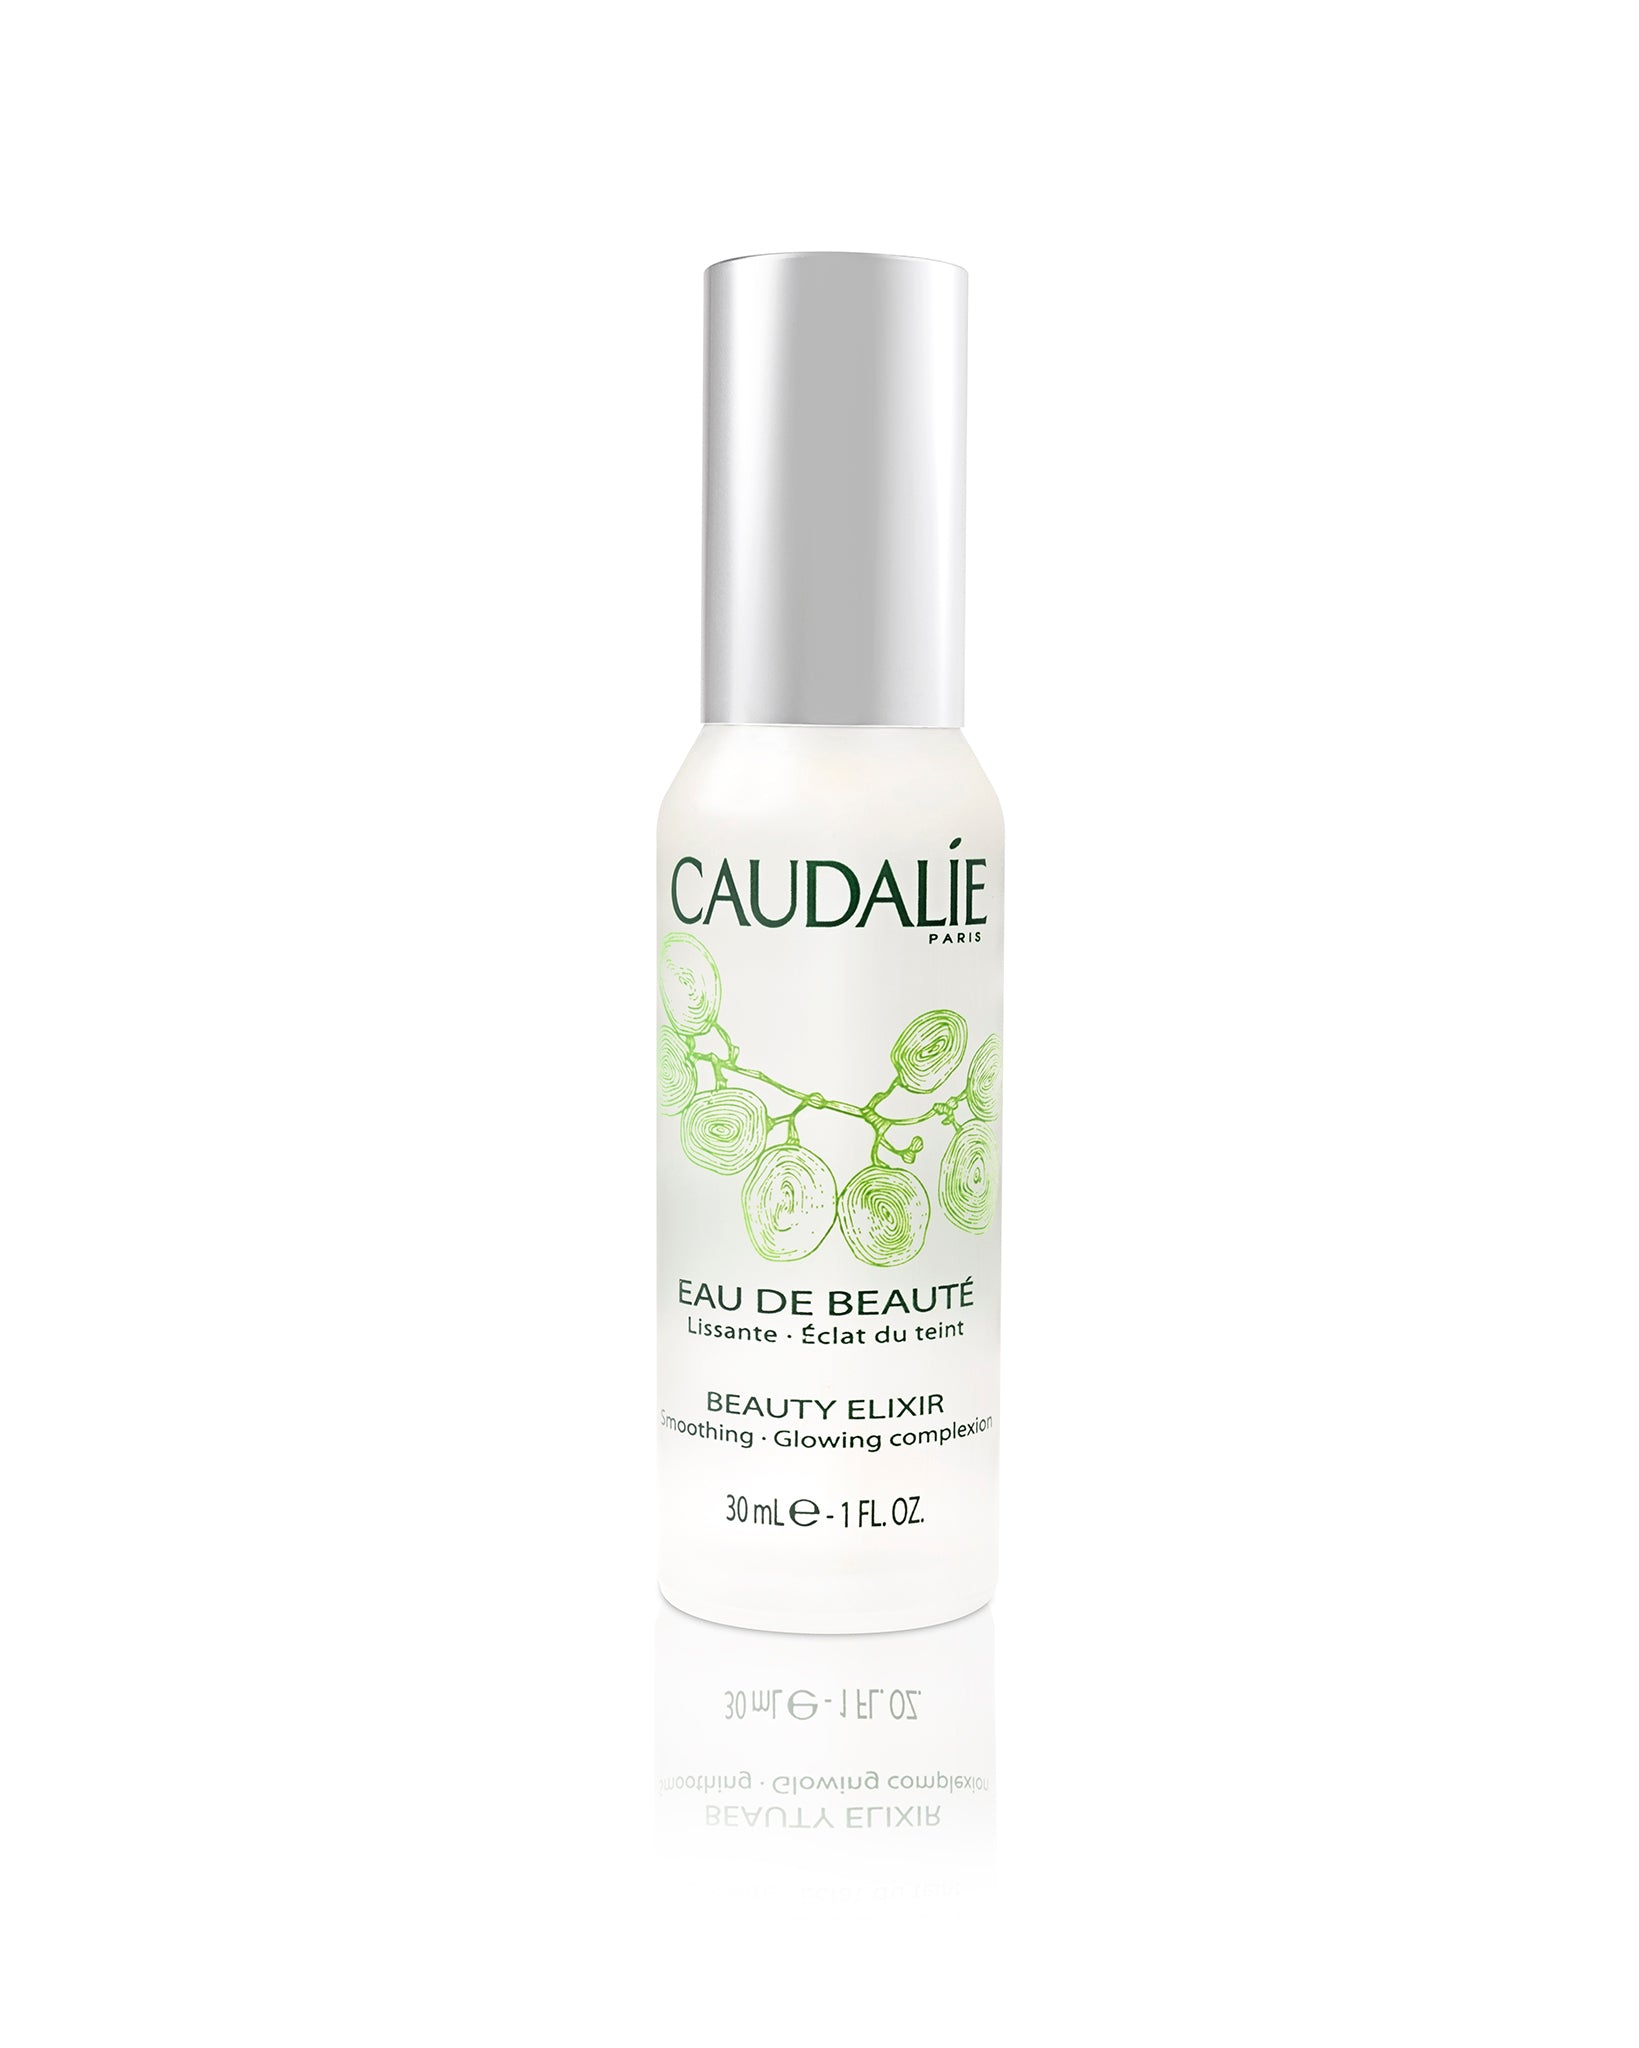 Caudalie Beauty Elixir Facial Mist